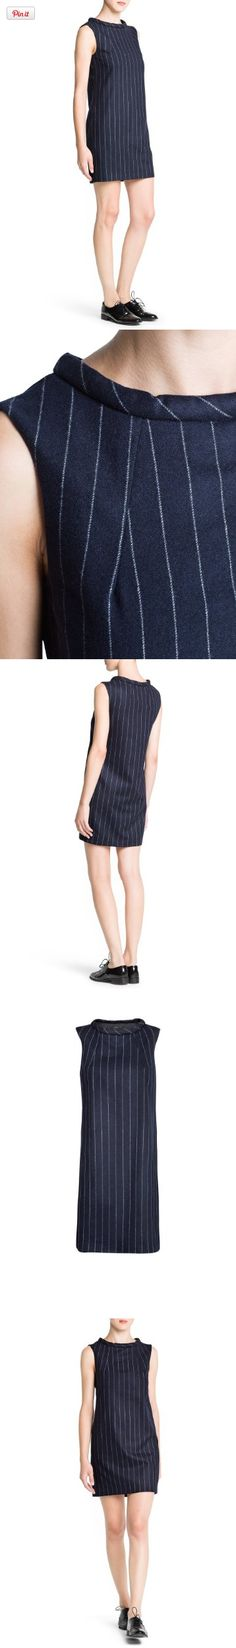 Mango Women's Pinstripe Wool Dress, Dark Blue #purchased